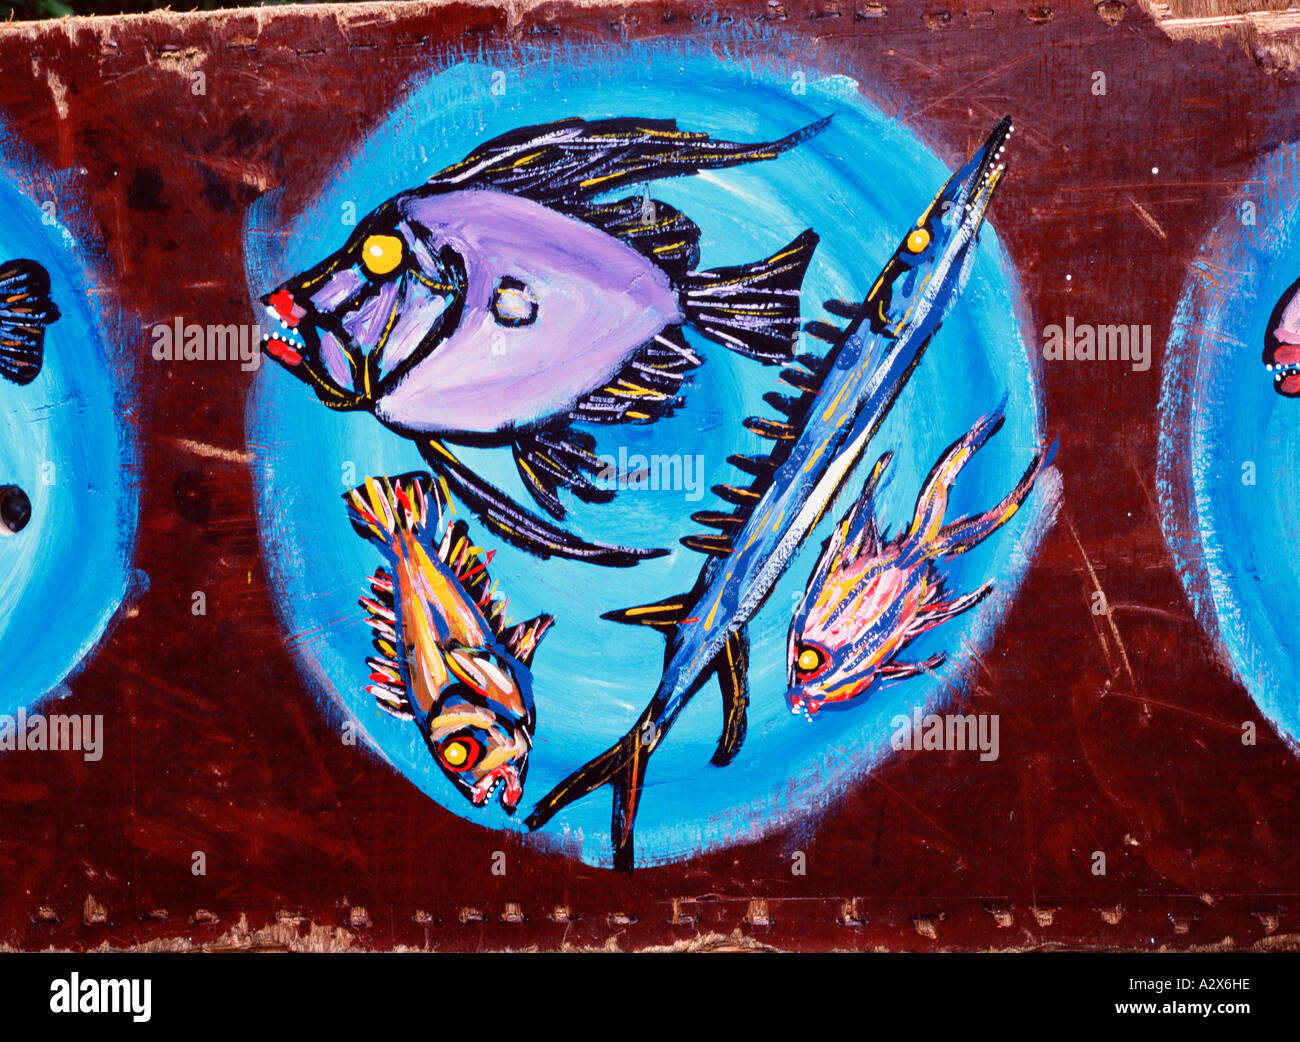 Artwork still life food painting of fishes on a plate. - Stock Image